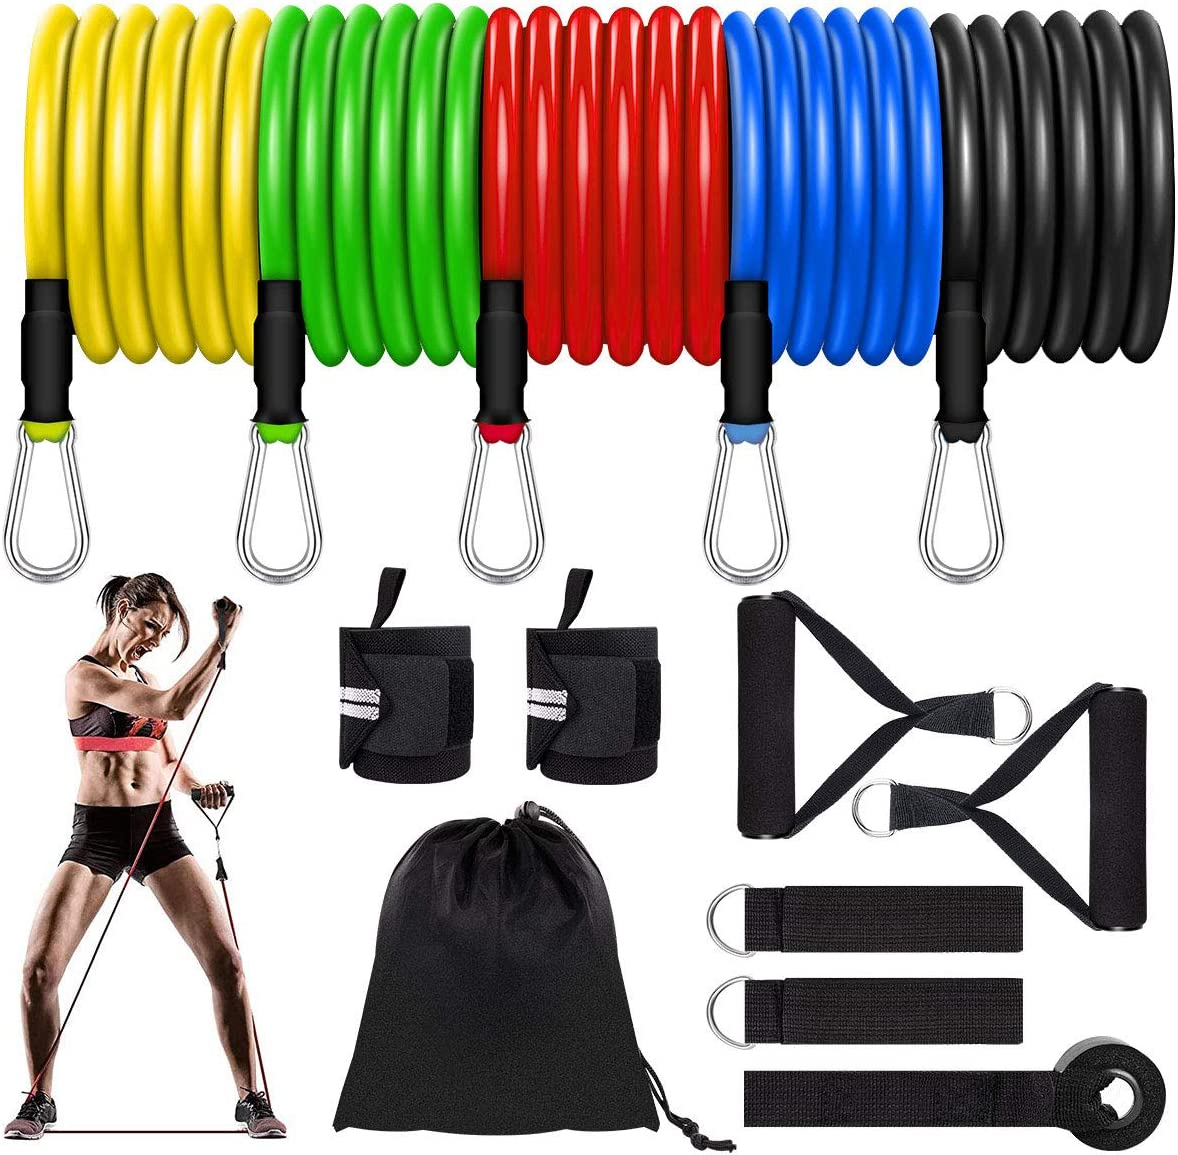 Lacoco Resistance Bands Set, 5 Level Exercise Bands Durable Home Gym Fitness Strength Bands Versatile Workout Bands with Door Anchor, Handles, Ankle Straps for Physical Therapy, Workouts, Exercise